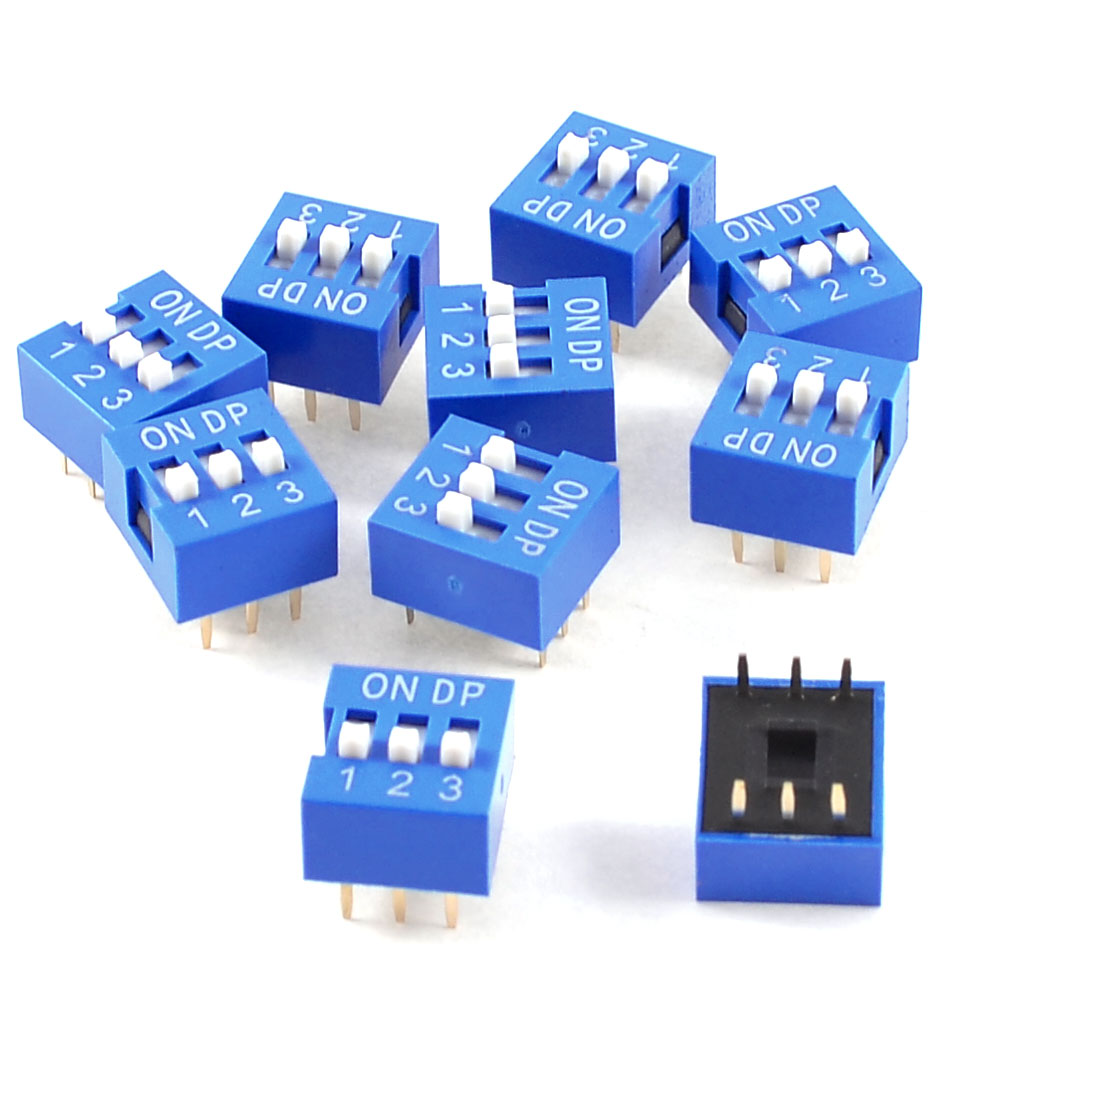 10 Pcs Blue Double Row 6 Pin 3 Positions 2.54mm Pitch DIP Switches